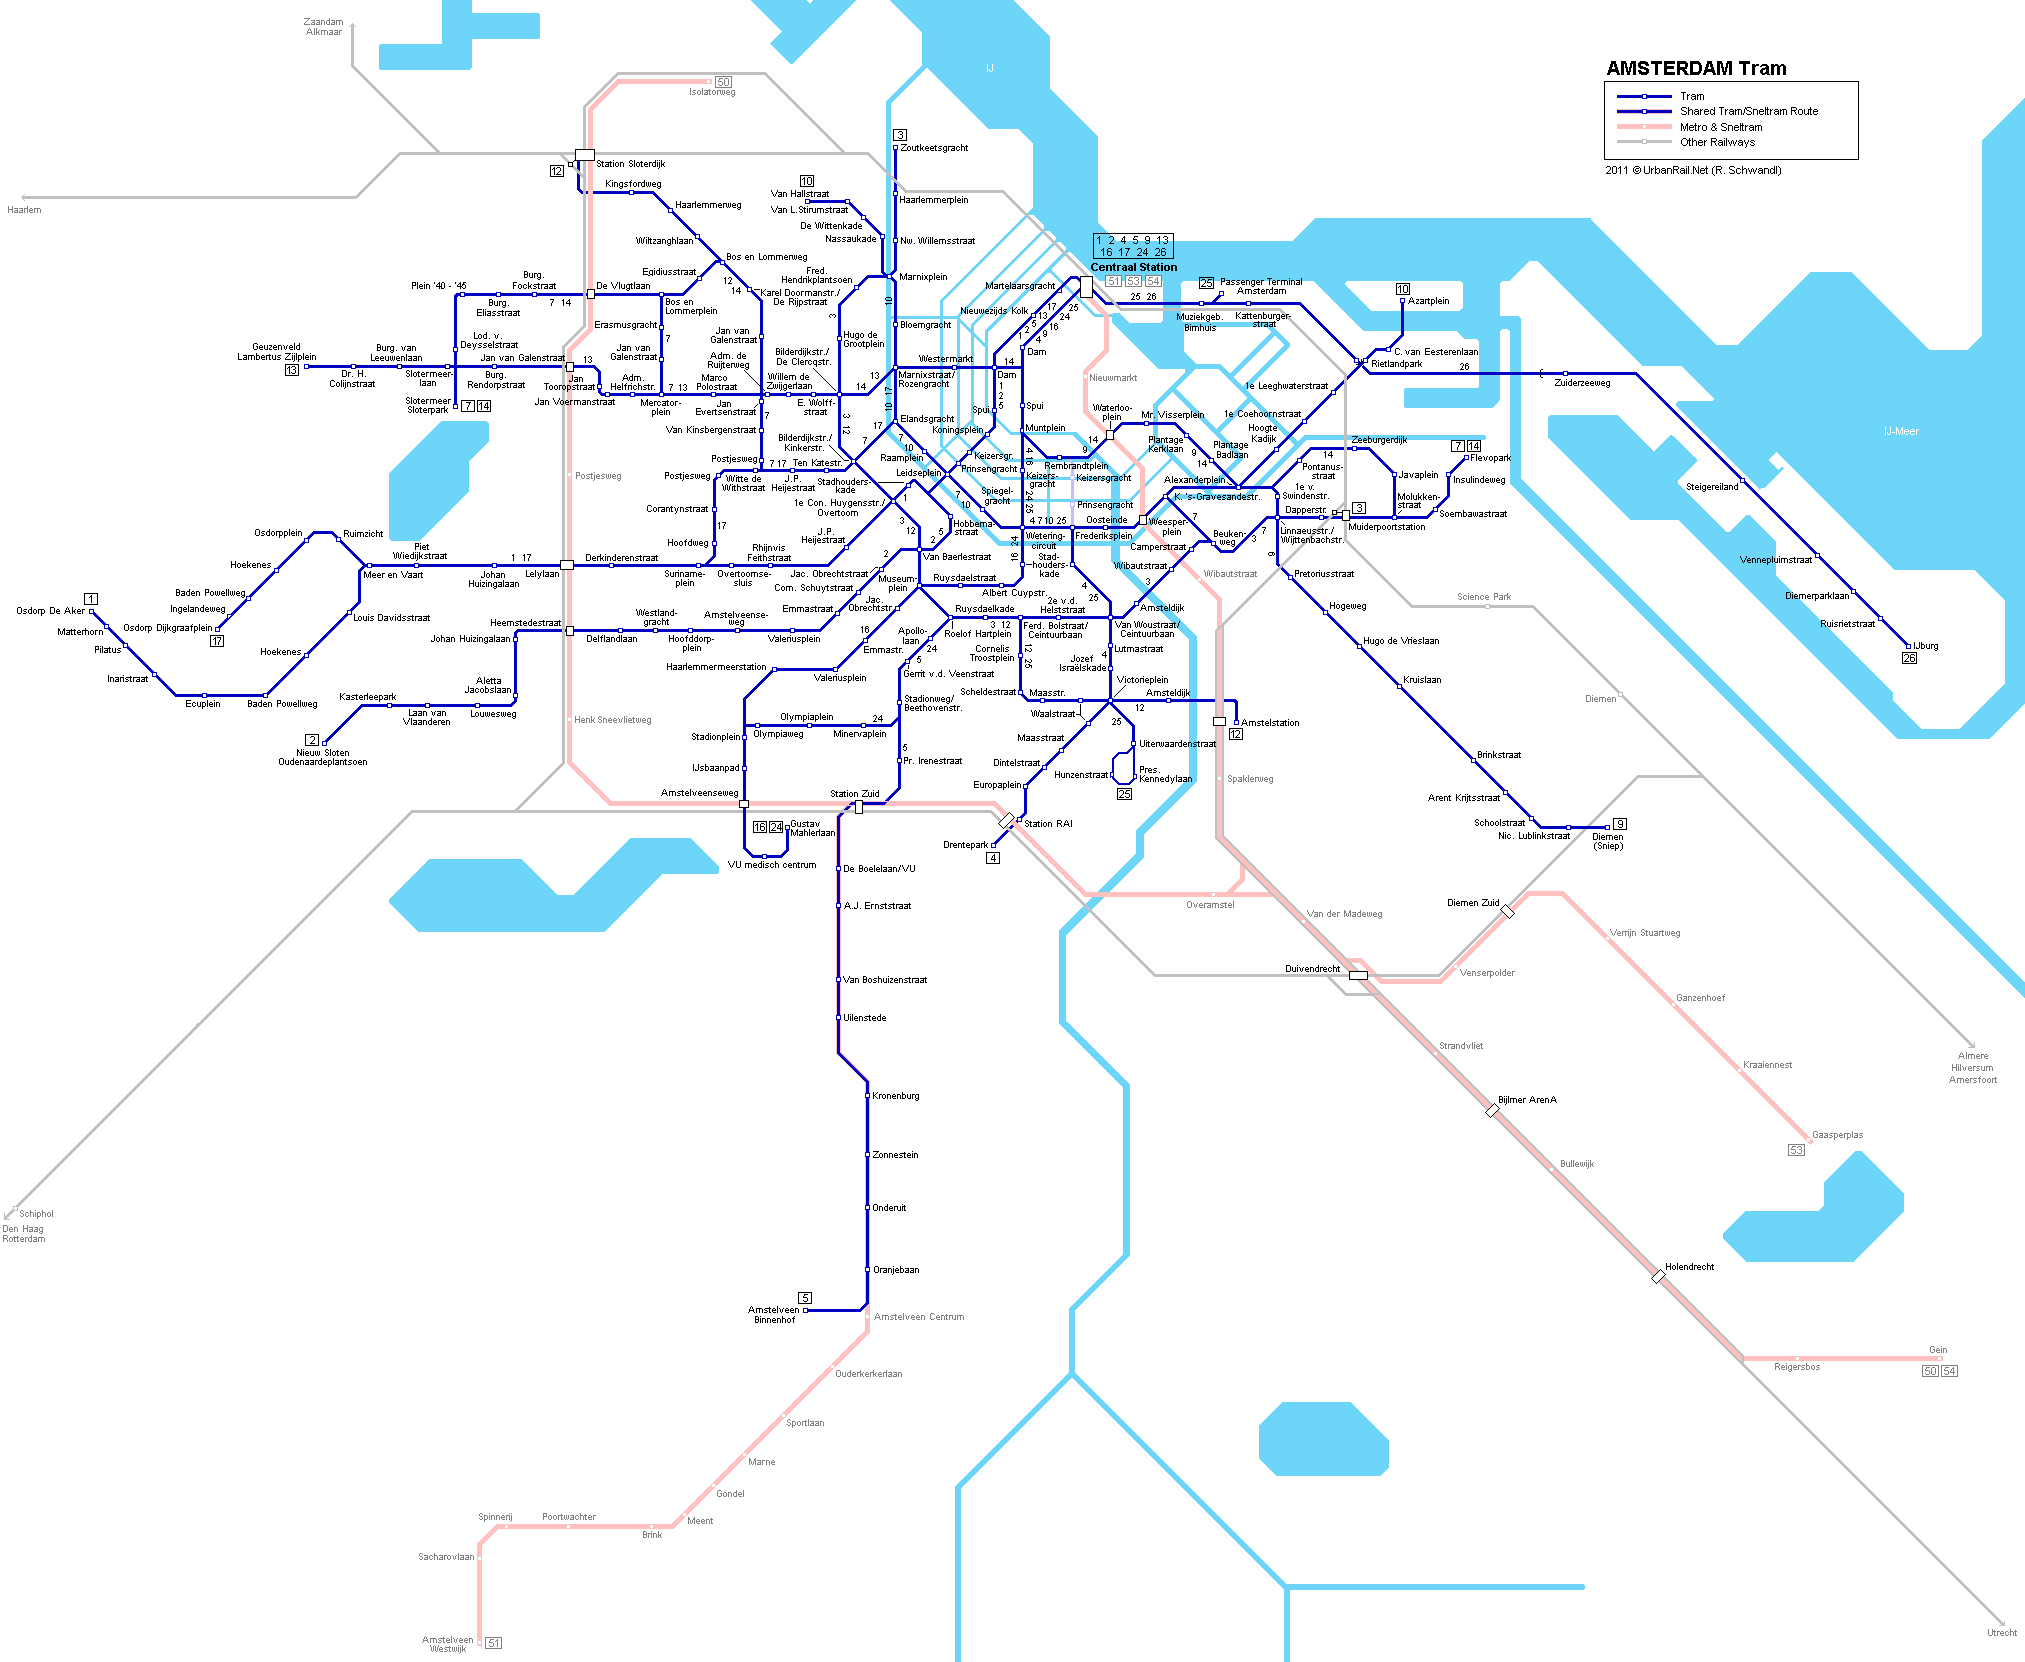 Amsterdam Tram Map For Free Download | Map Of Amsterdam Tramway Network - Amsterdam Tram Map Printable